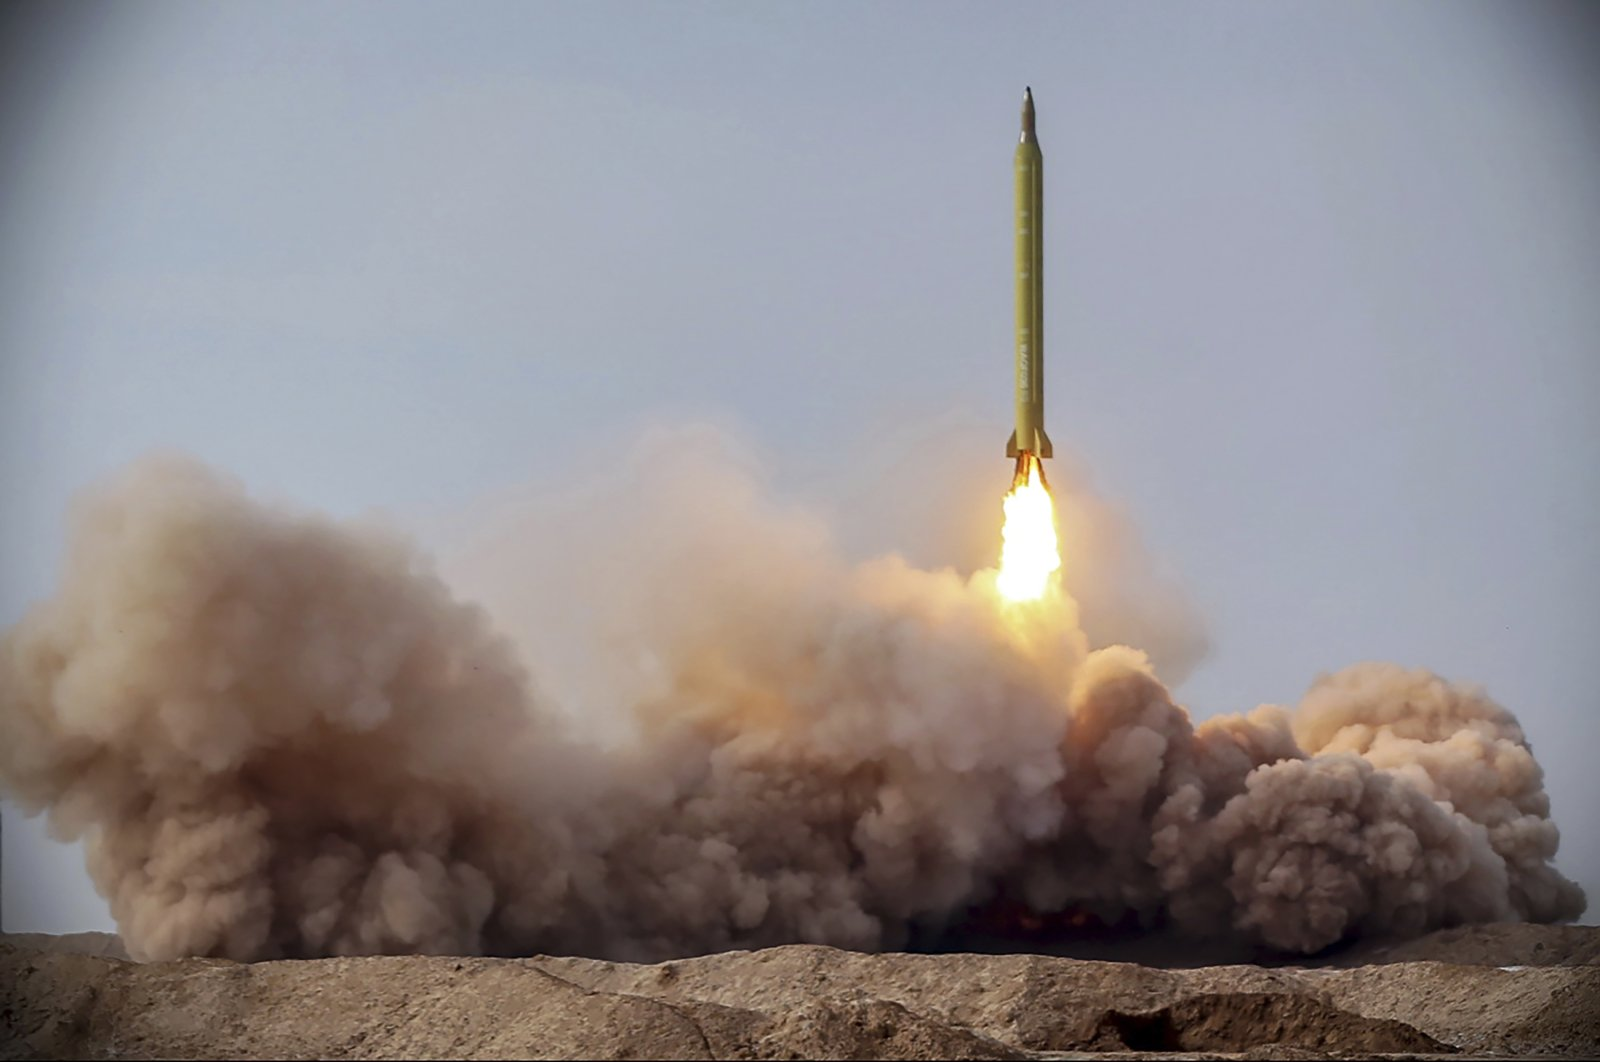 In this file photo released Jan. 16, 2021, by the Iranian Revolutionary Guard, a missile is launched in a drill in Iran. On Tuesday, Jan. 26, 2021, Iran warned the Biden administration that it will not have an indefinite time period to rejoin the 2015 nuclear deal between Tehran and world powers. (Iranian Revolutionary Guard via AP)